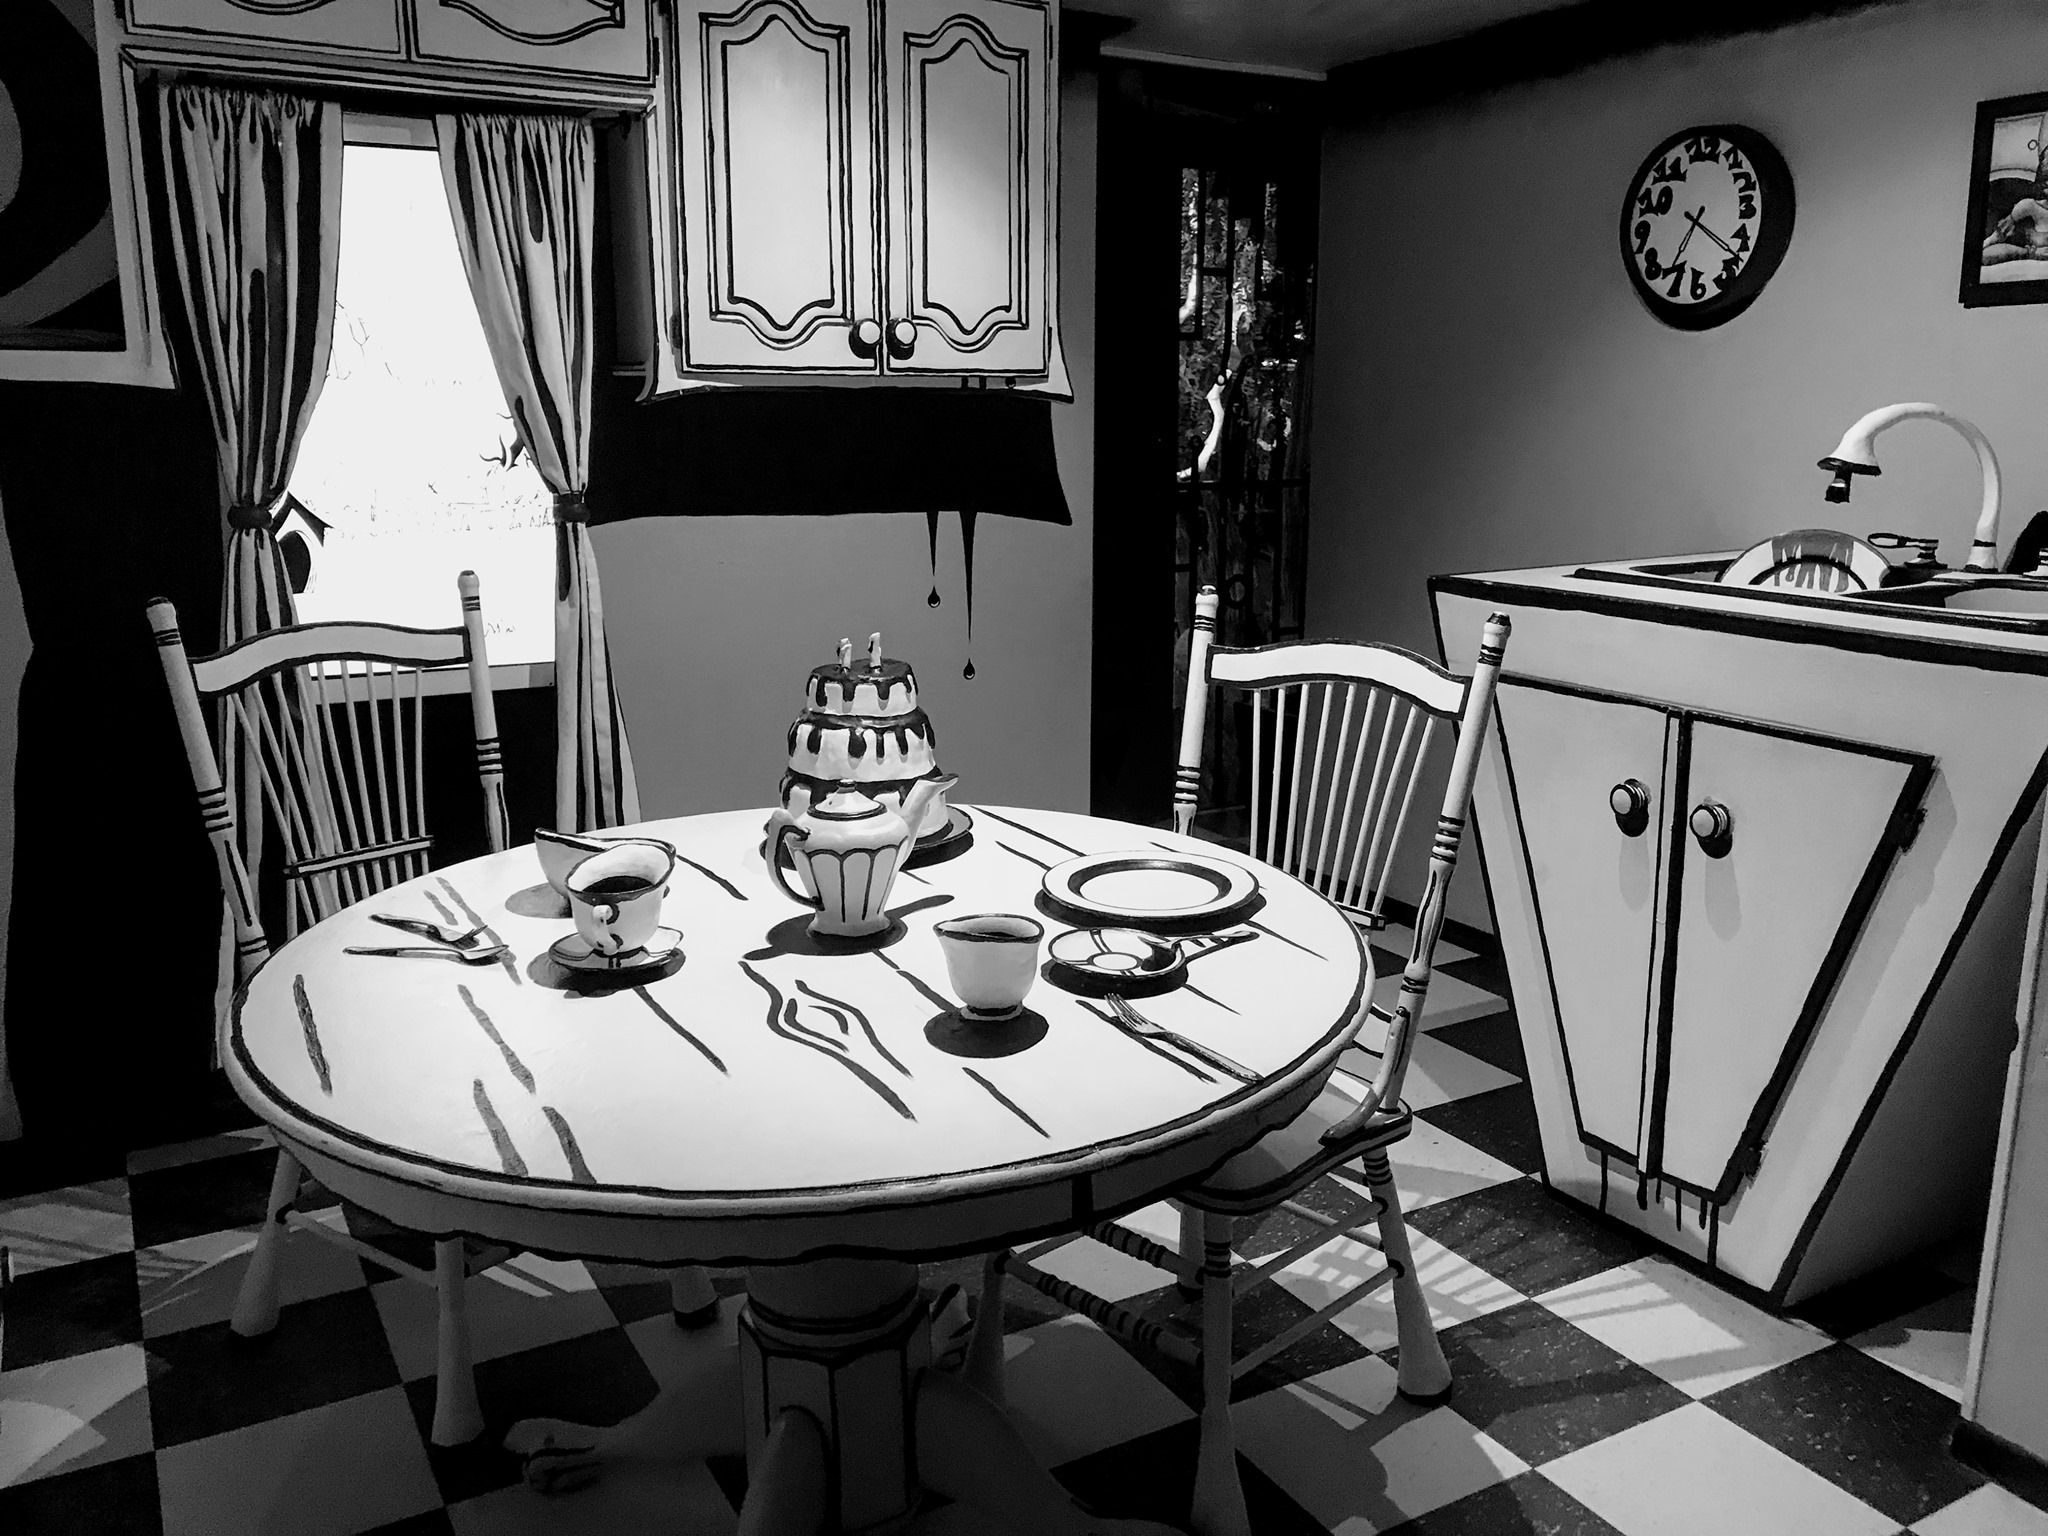 1950s style kitchen in black and white